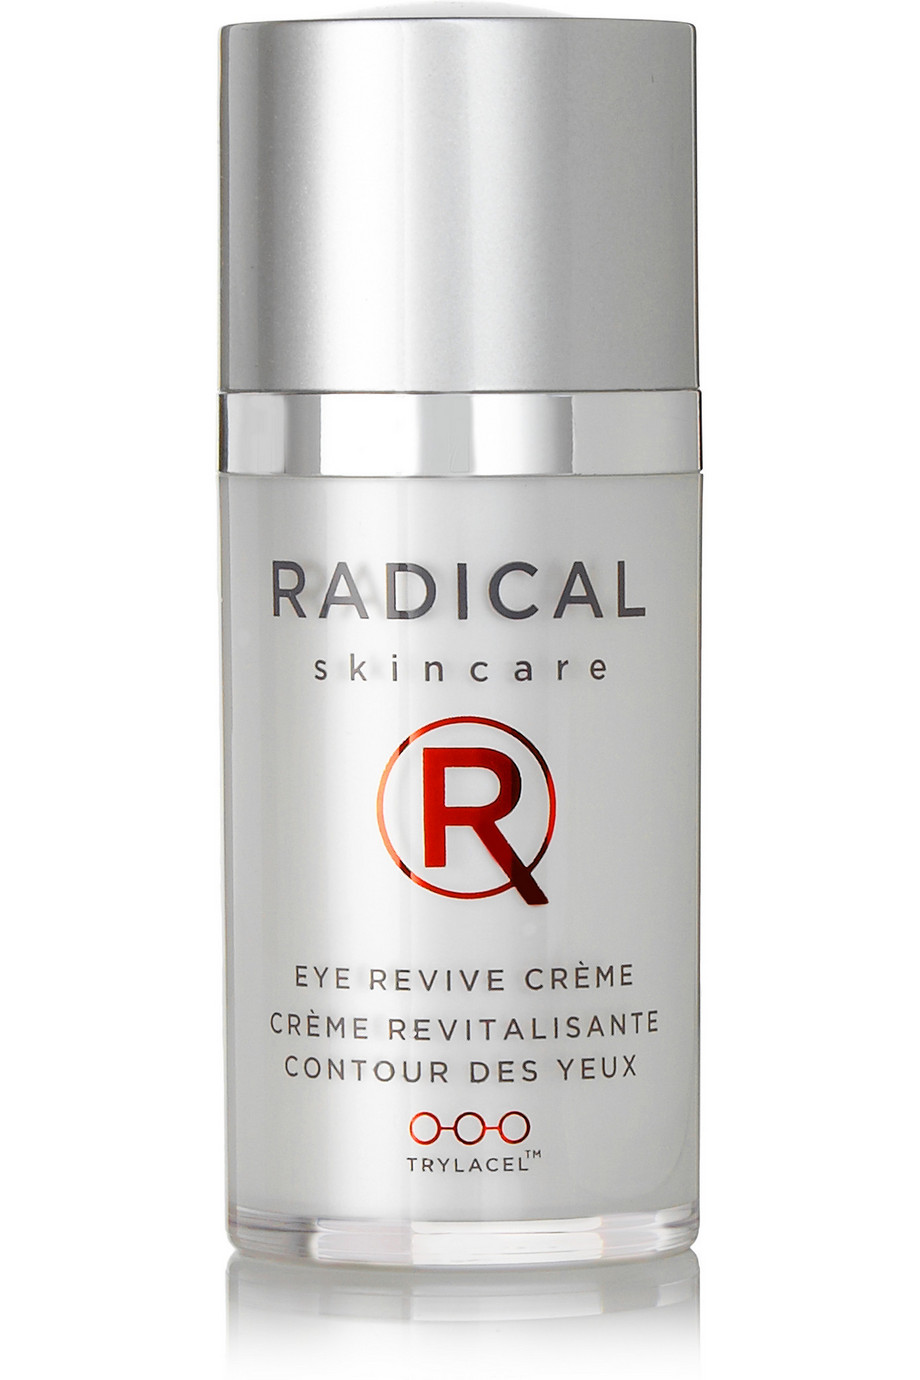 Eye Revive Crème, 15ml, by Radical Skincare